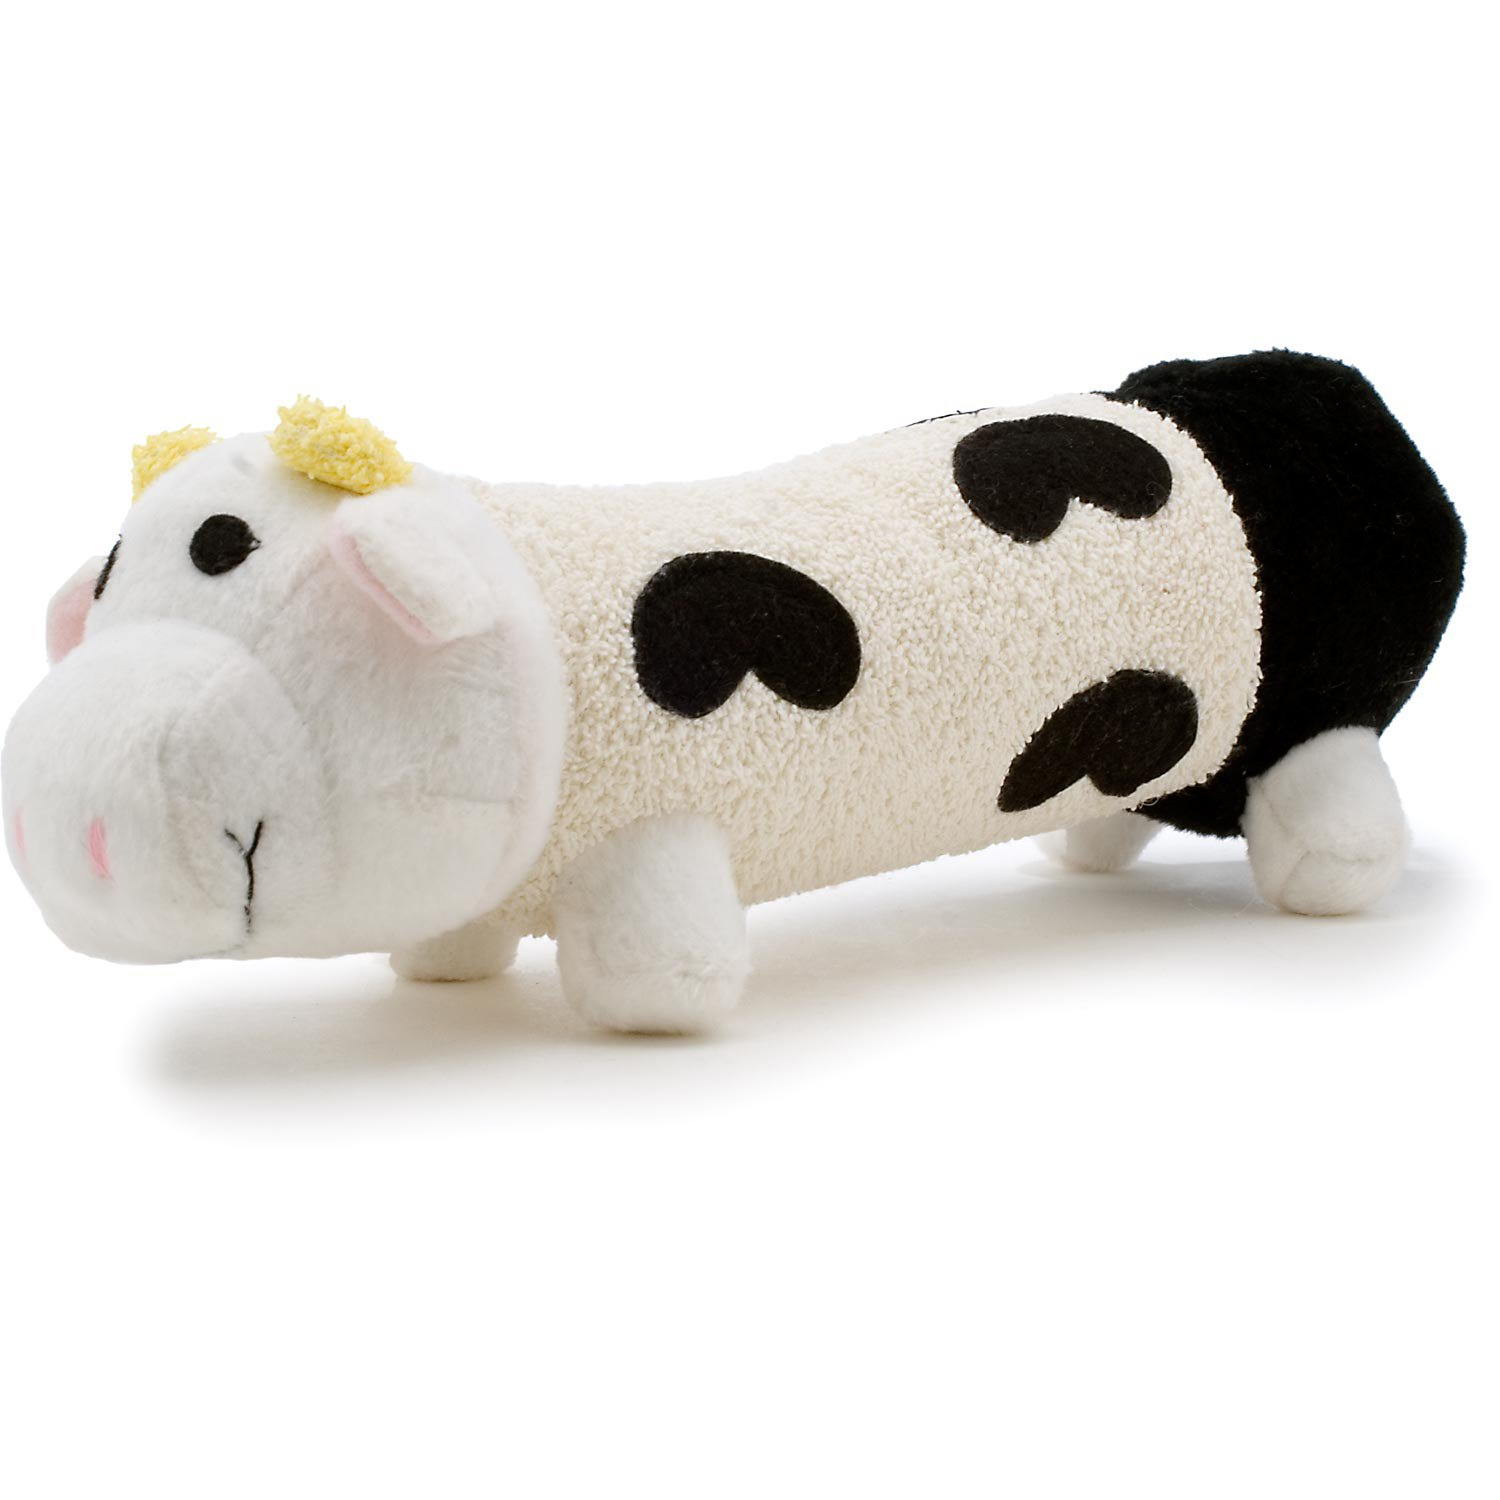 Booda Tuff Plush Long Friends Cow